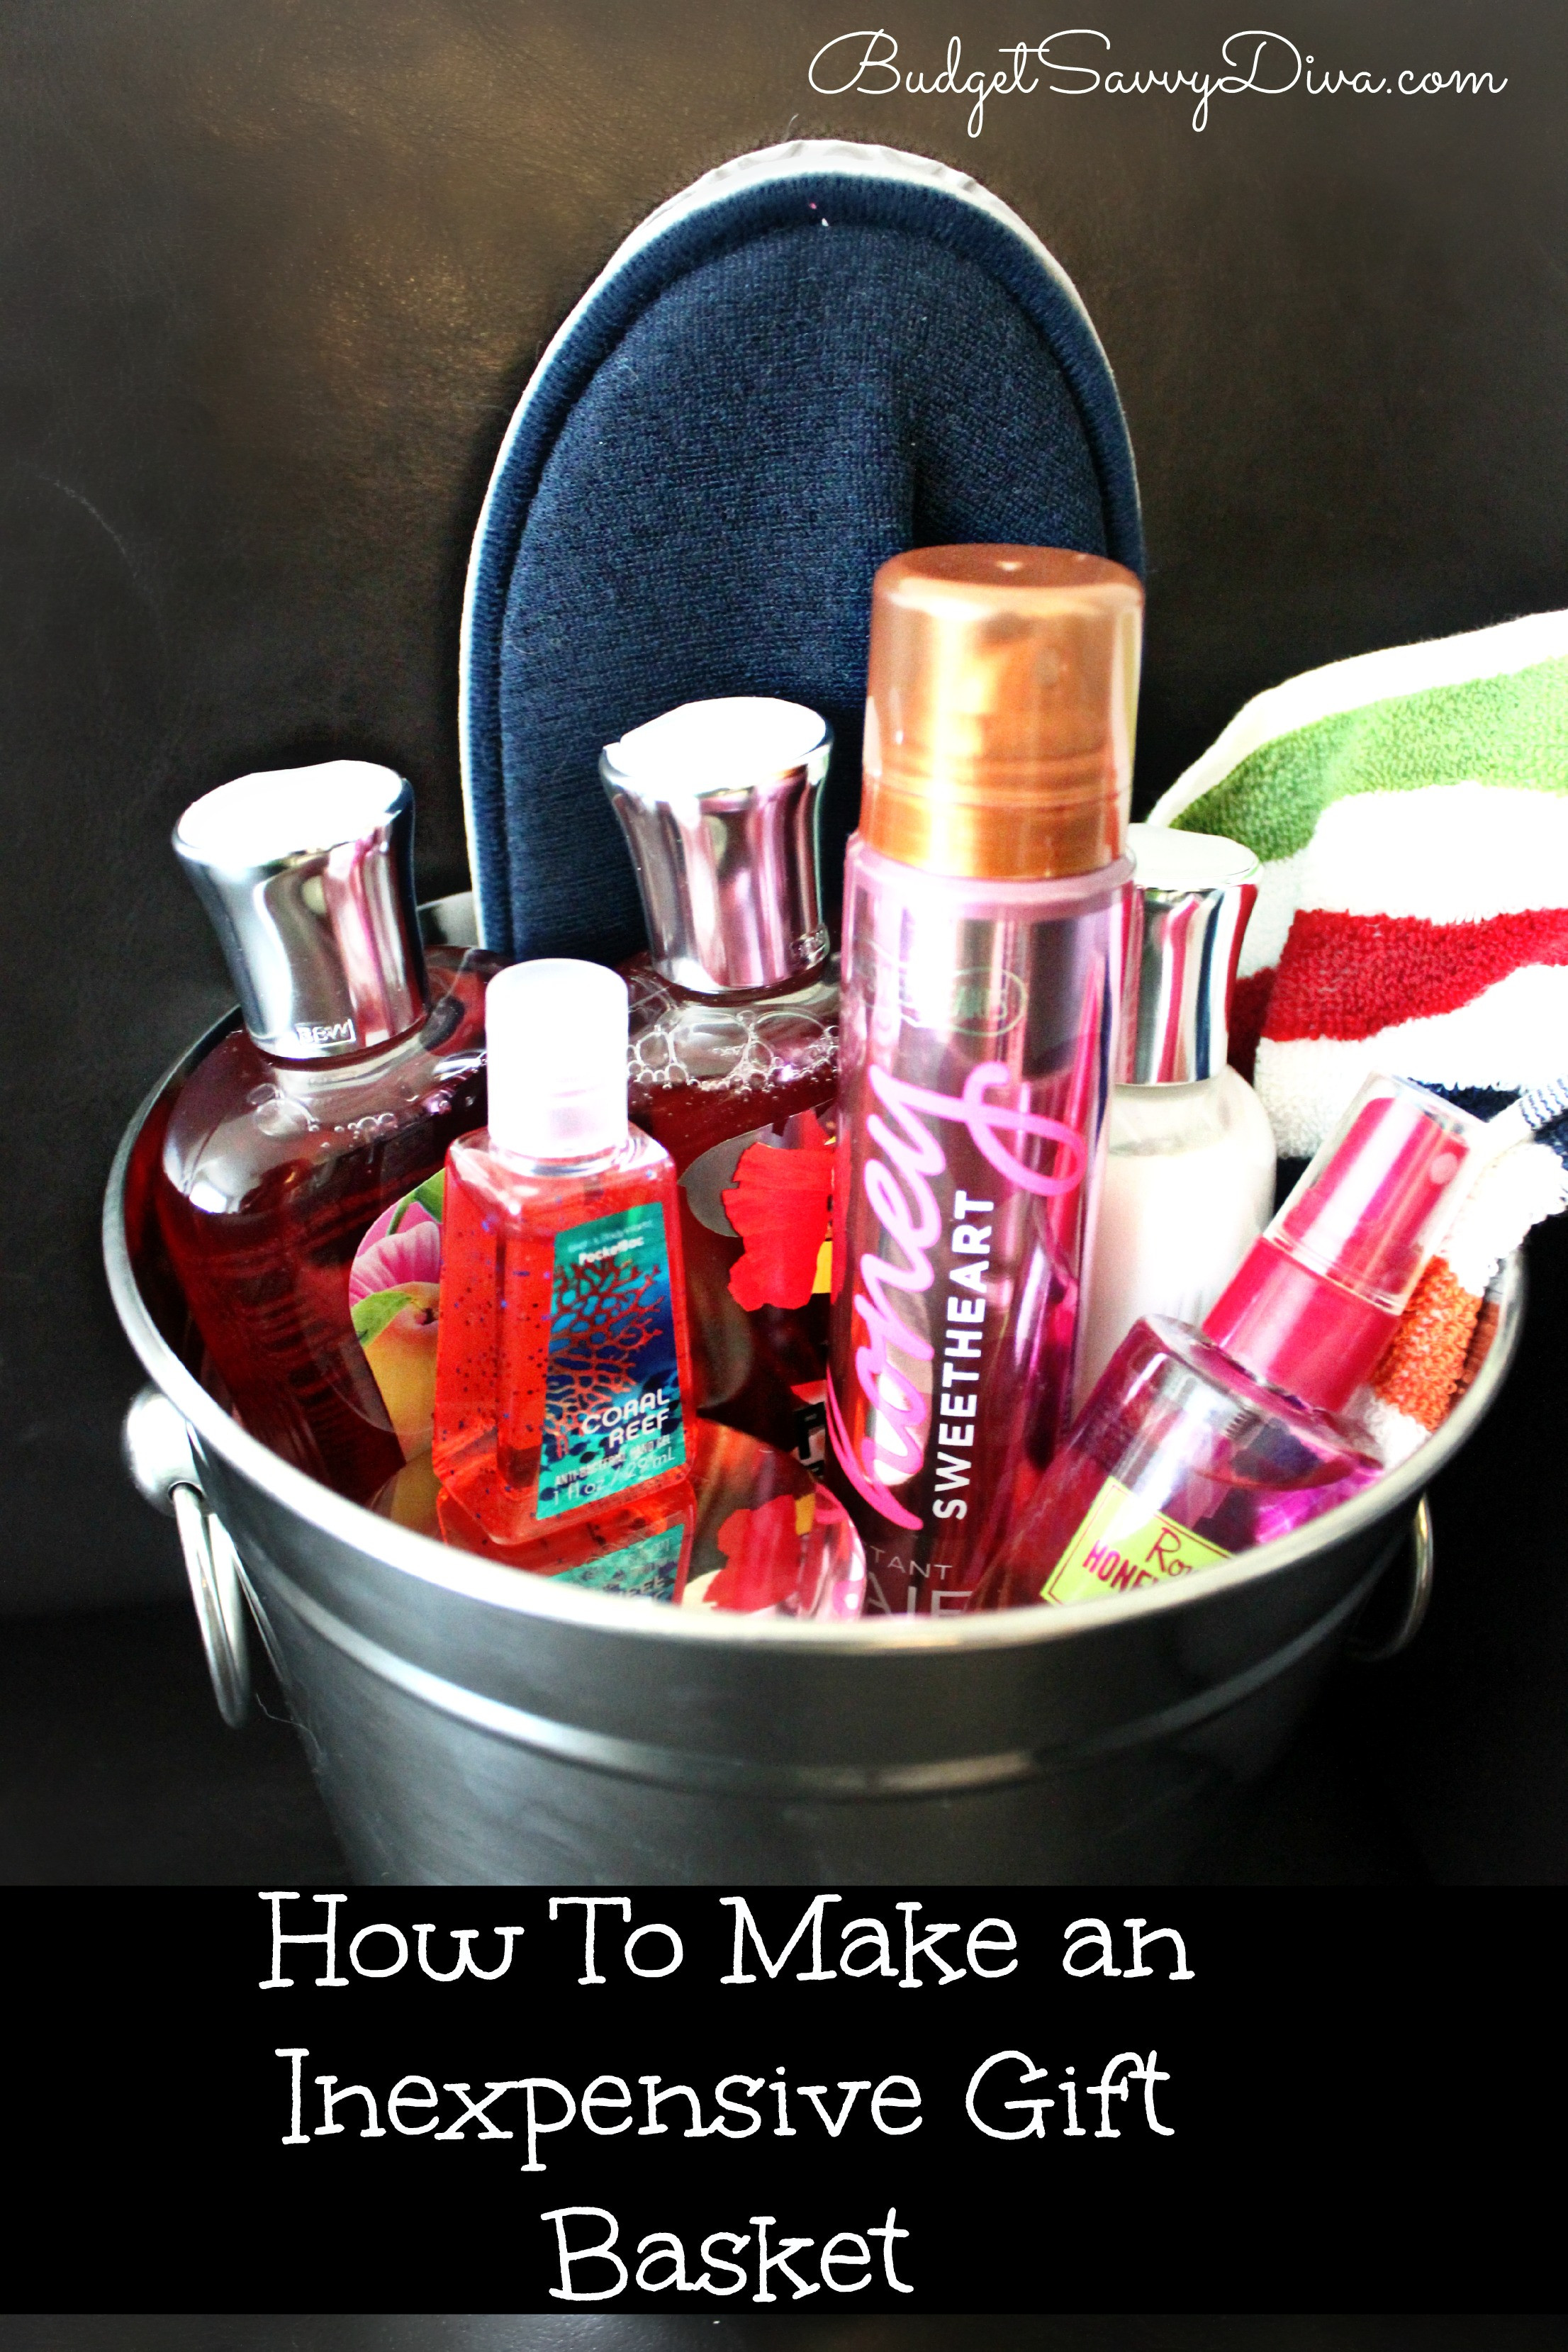 Best ideas about Cheap Homemade Gift Basket Ideas . Save or Pin How to Make an Inexpensive Gift Basket Now.